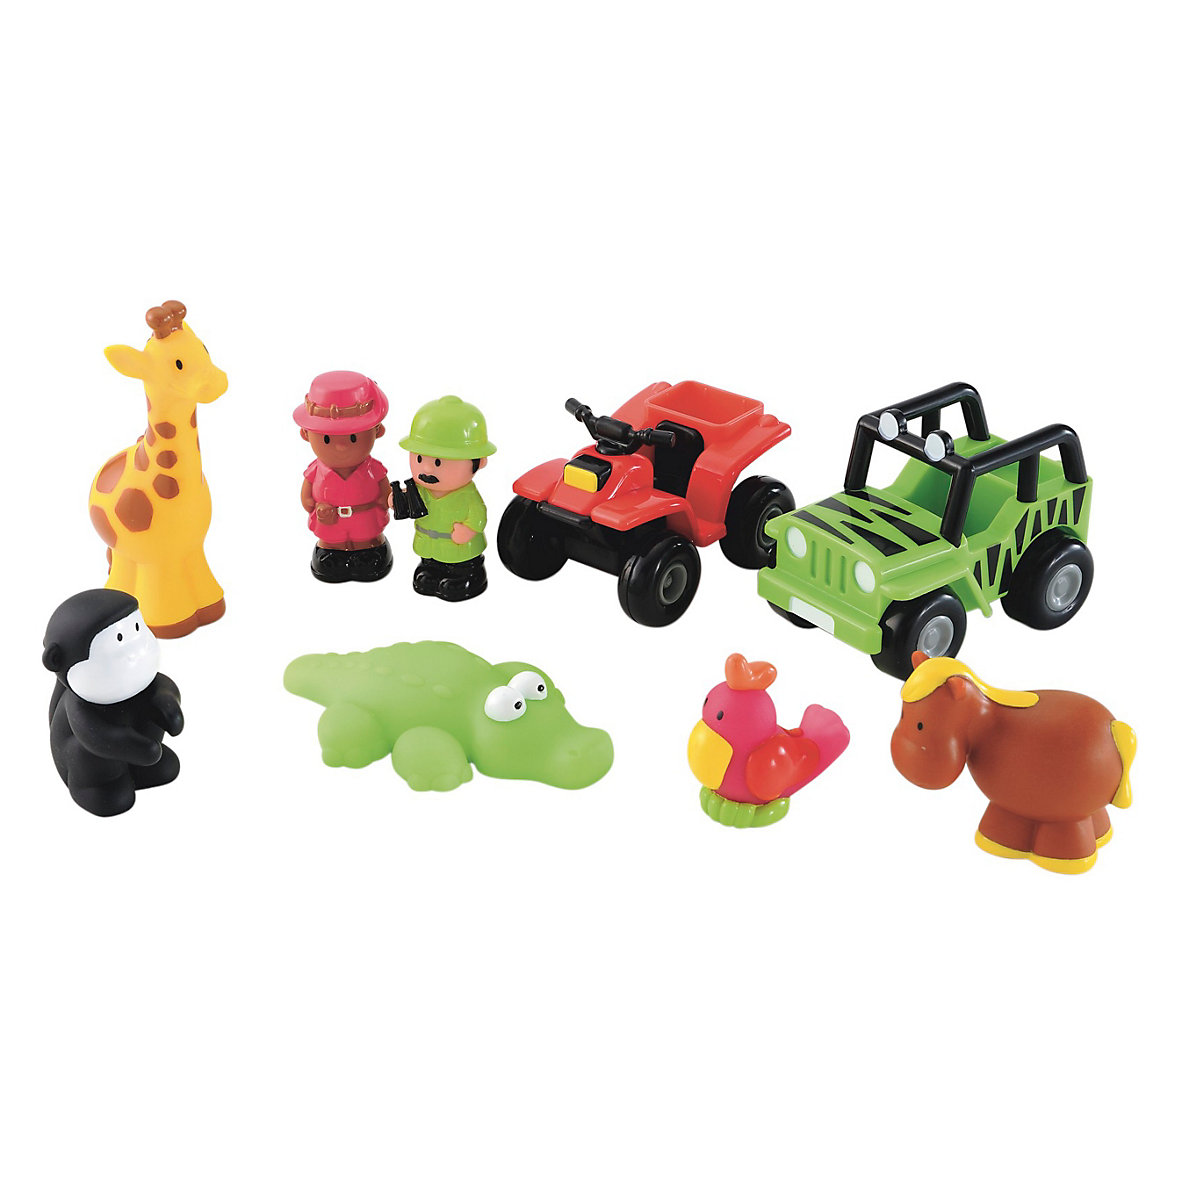 New ELC Boys and Girls Happyland Safari Adventures Toy From 18 months - Toddler Gifts